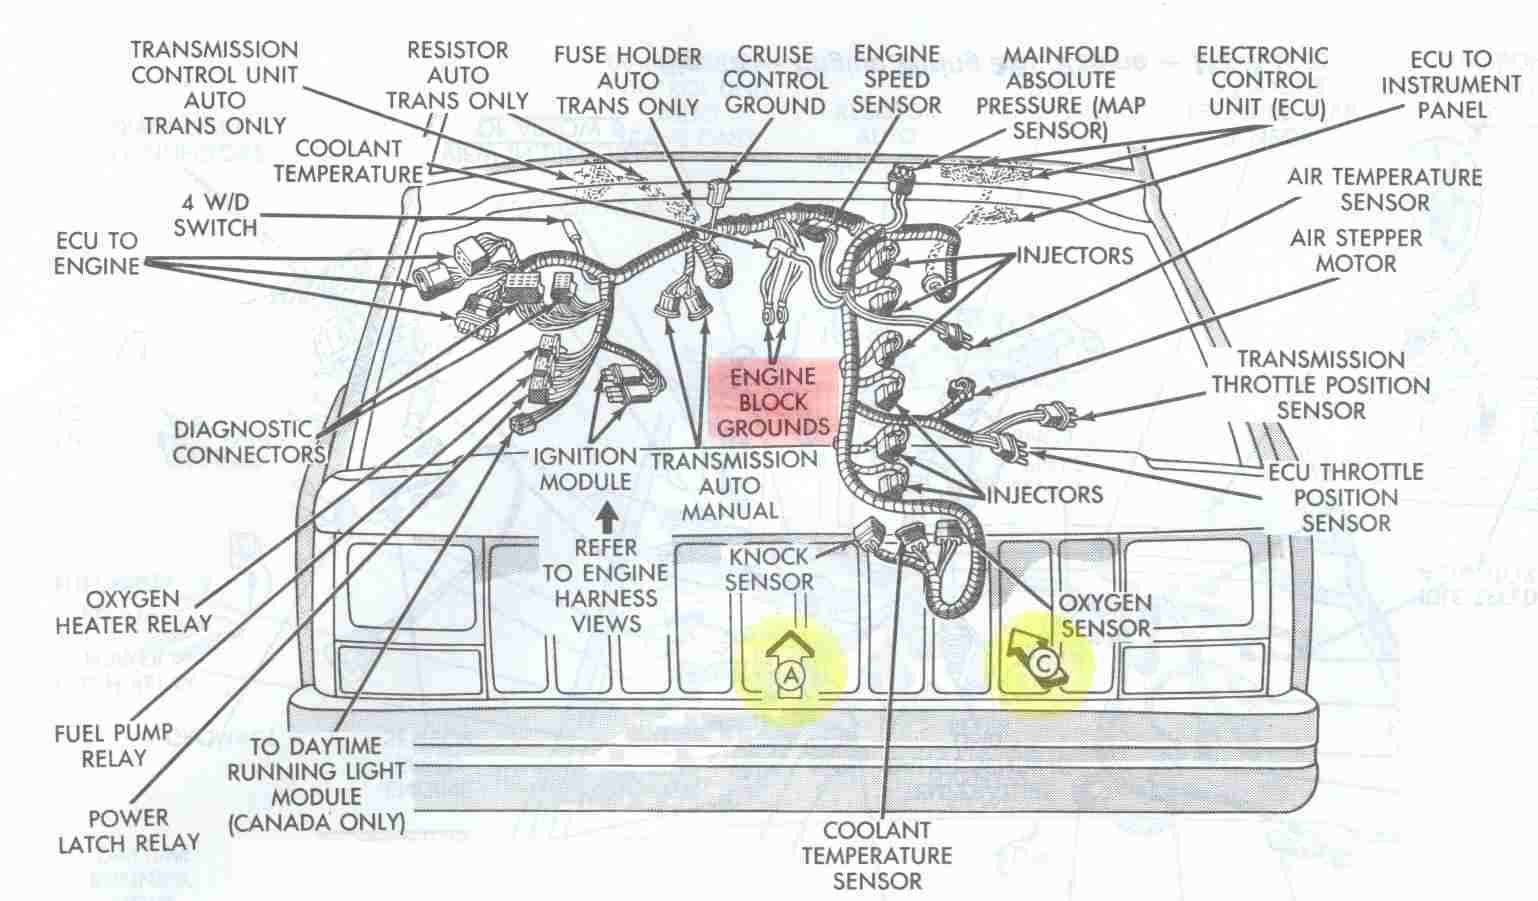 ab0134a7d9e021431187af597eb4aeca engine bay schematic showing major electrical ground points for 1999 jeep cherokee ignition wiring diagram at honlapkeszites.co